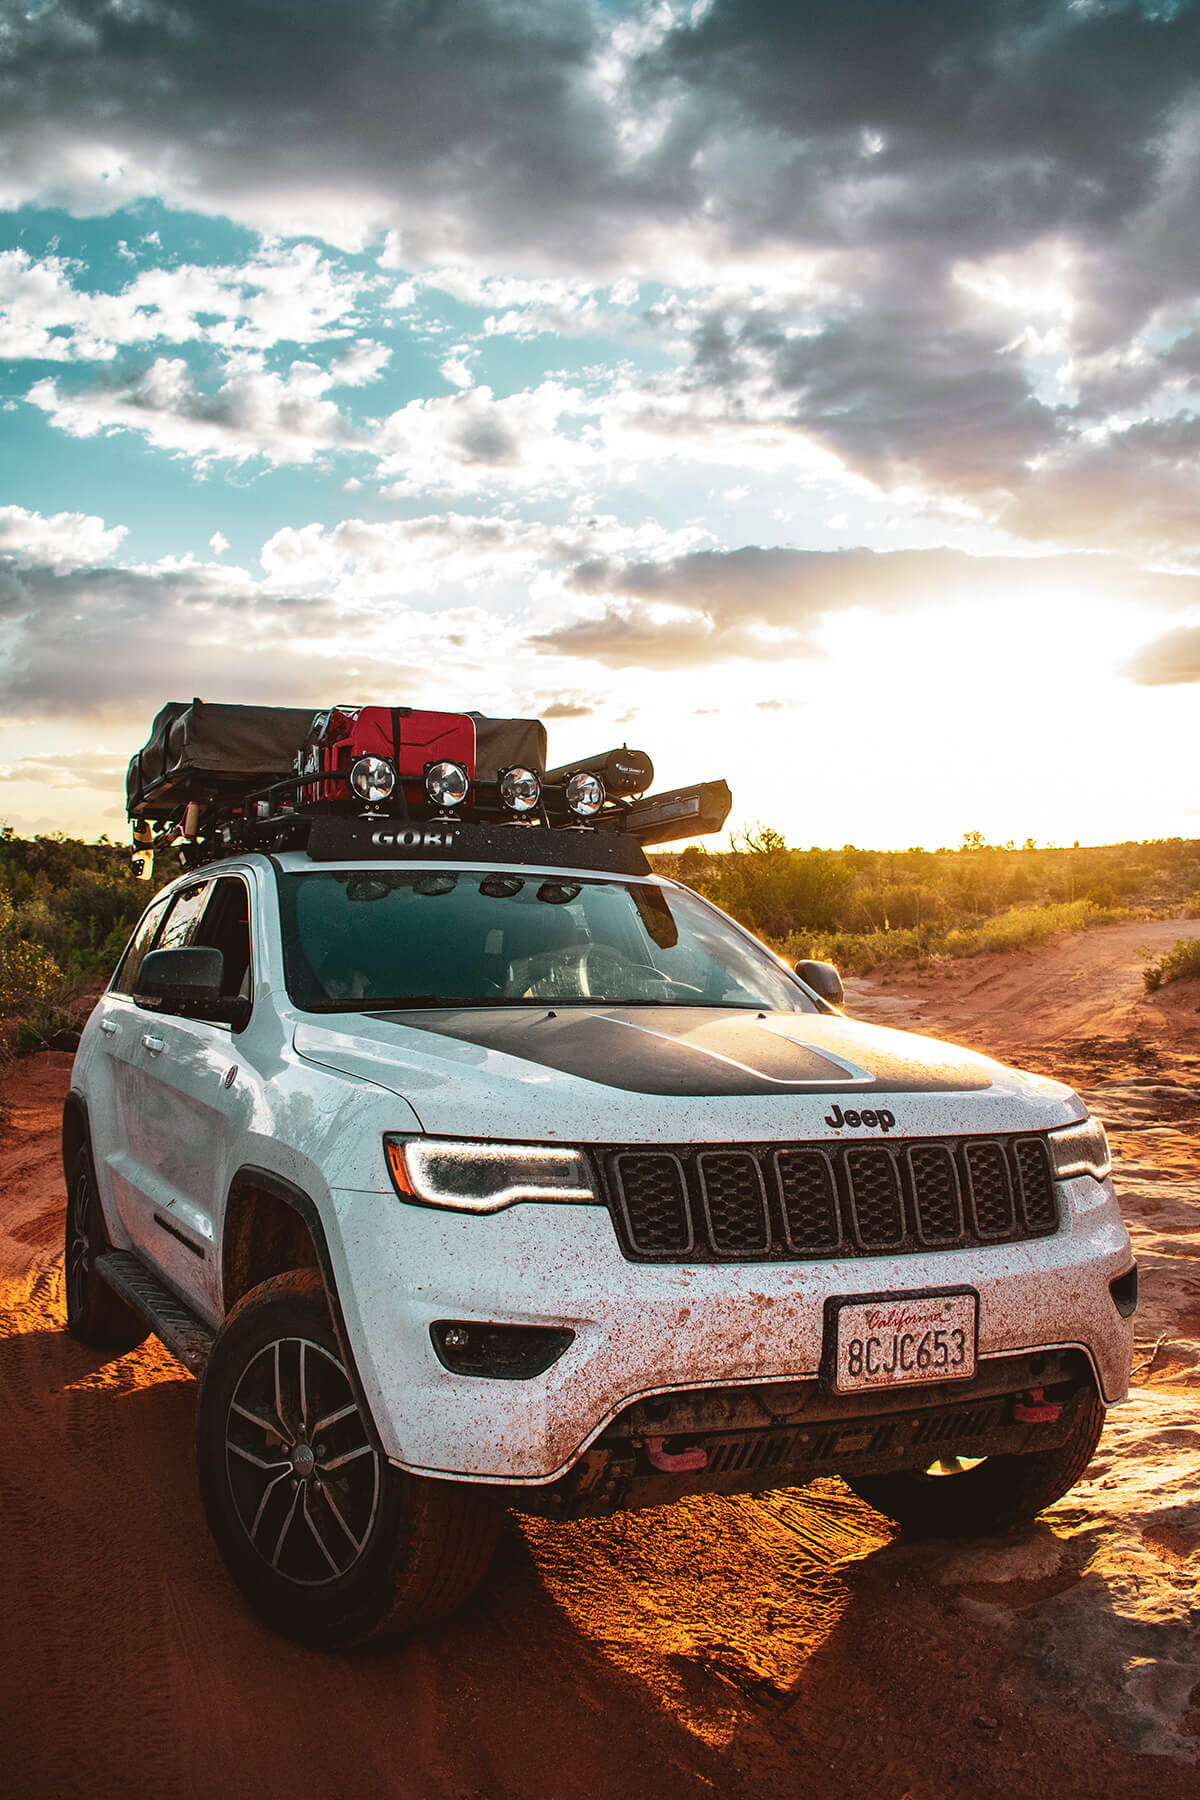 Lifted Jeep grand Cherokee on 33 inch tires